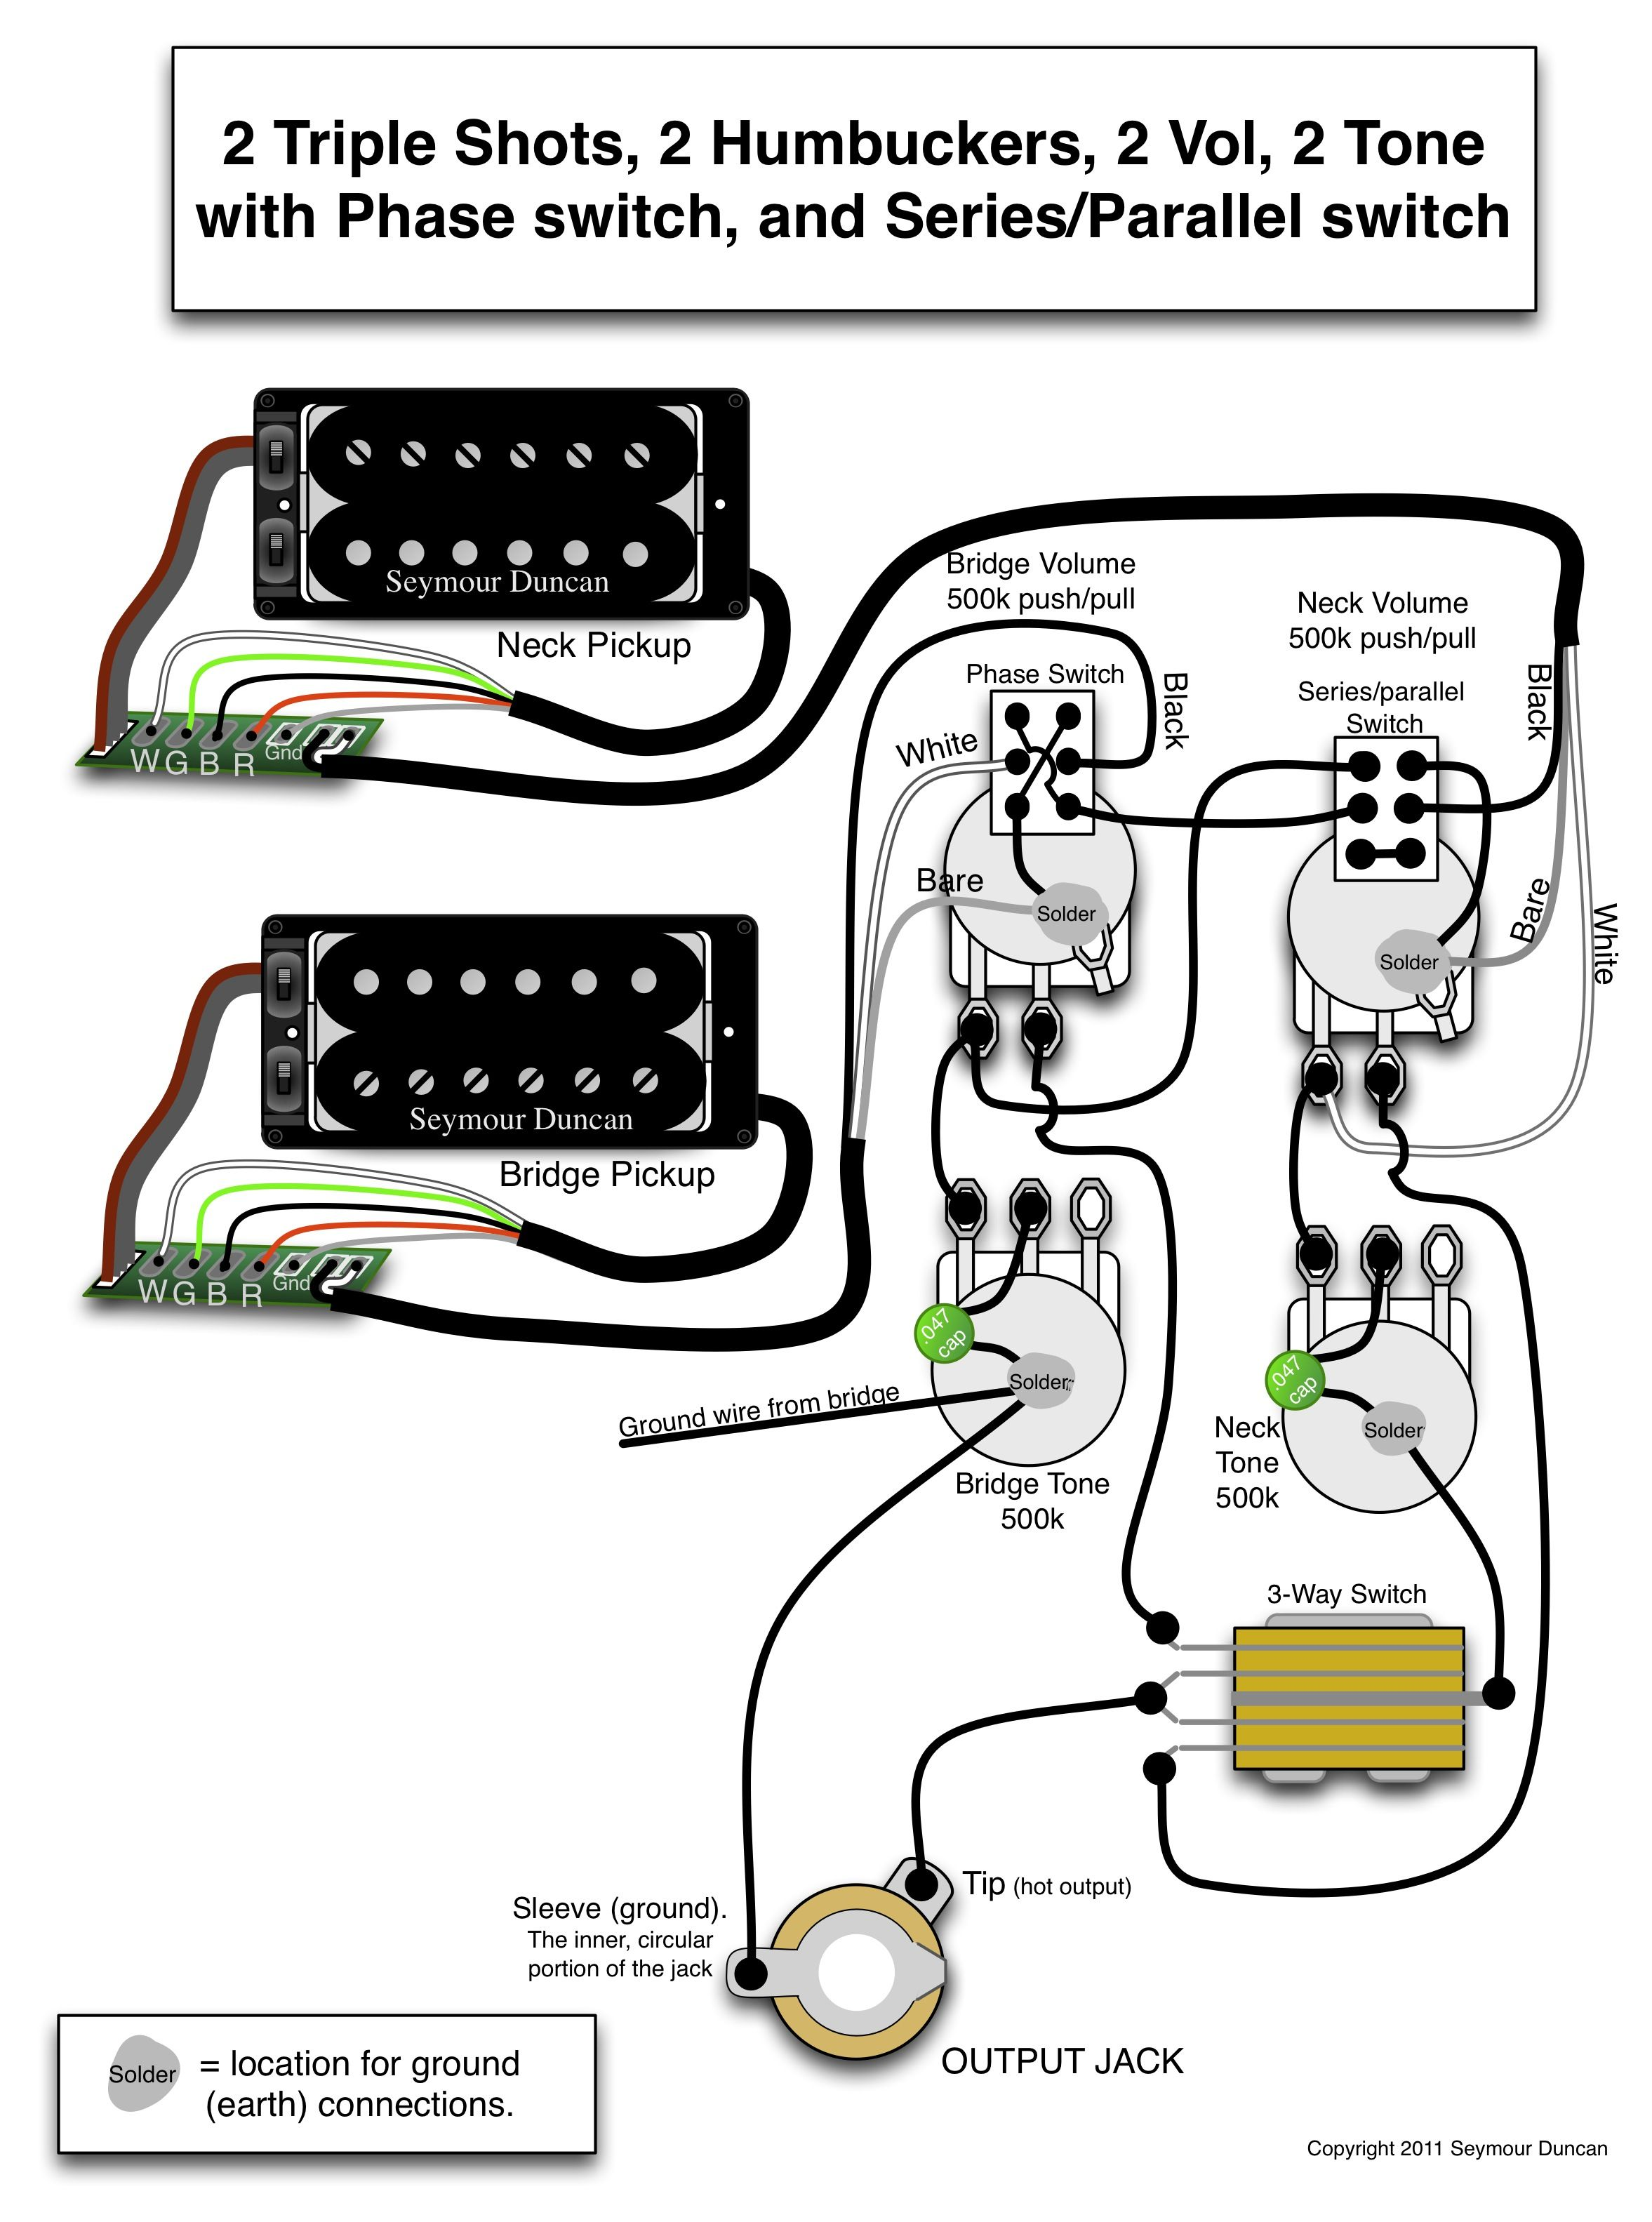 seymour duncan wiring diagram 2 triple shots, 2 humbuckers, 2 vol parallel speaker wiring diagram seymour duncan wiring diagram 2 triple shots, 2 humbuckers, 2 vol, 2 tone (one with phase switch and the other with series parallel switch)